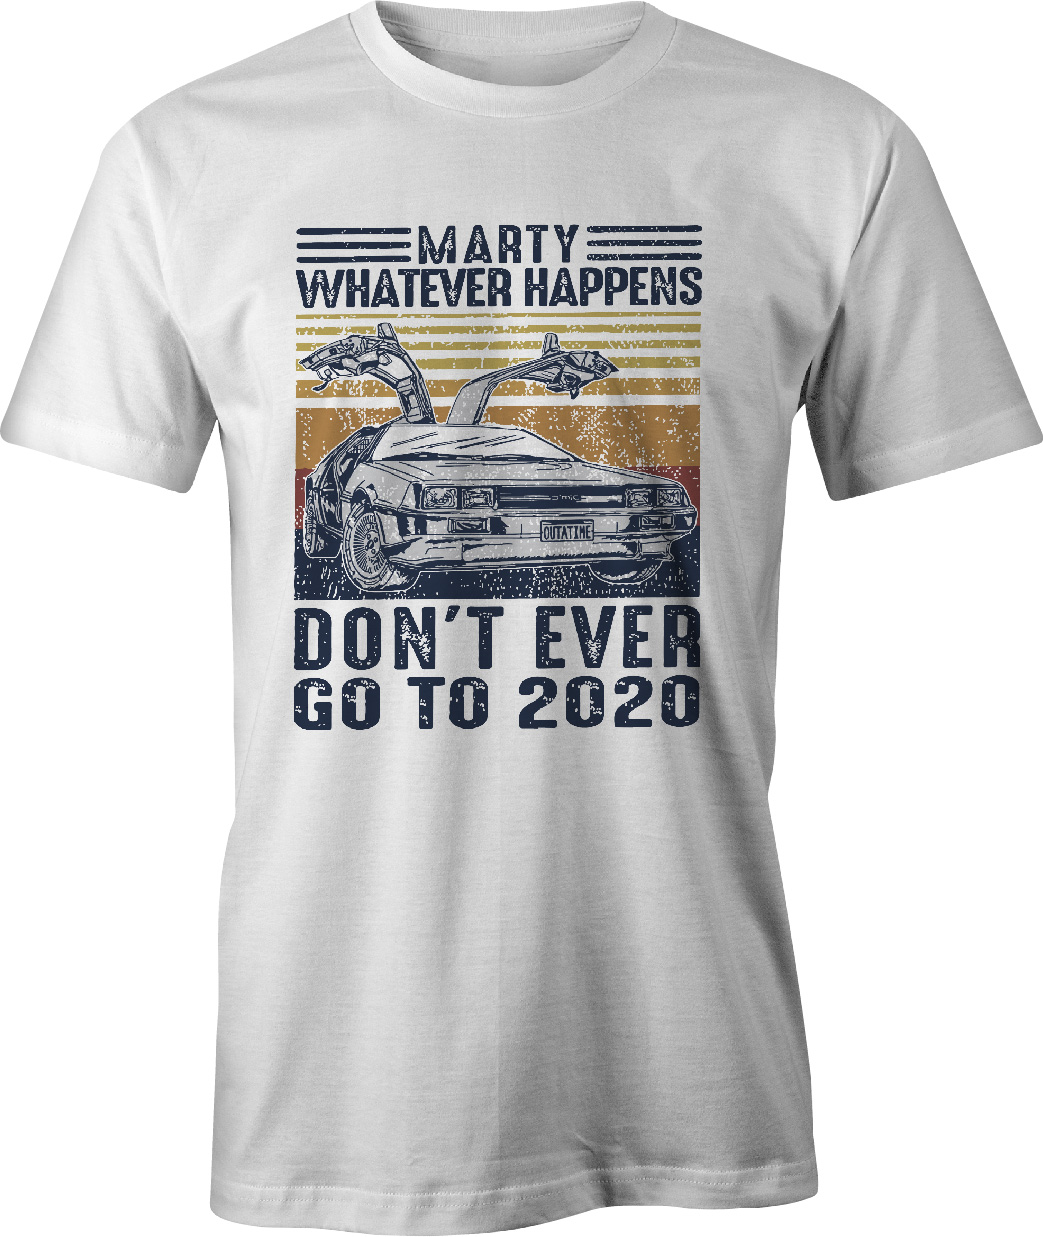 Back To The Future Don't Ever Go Back to 2021 T Shirt in white